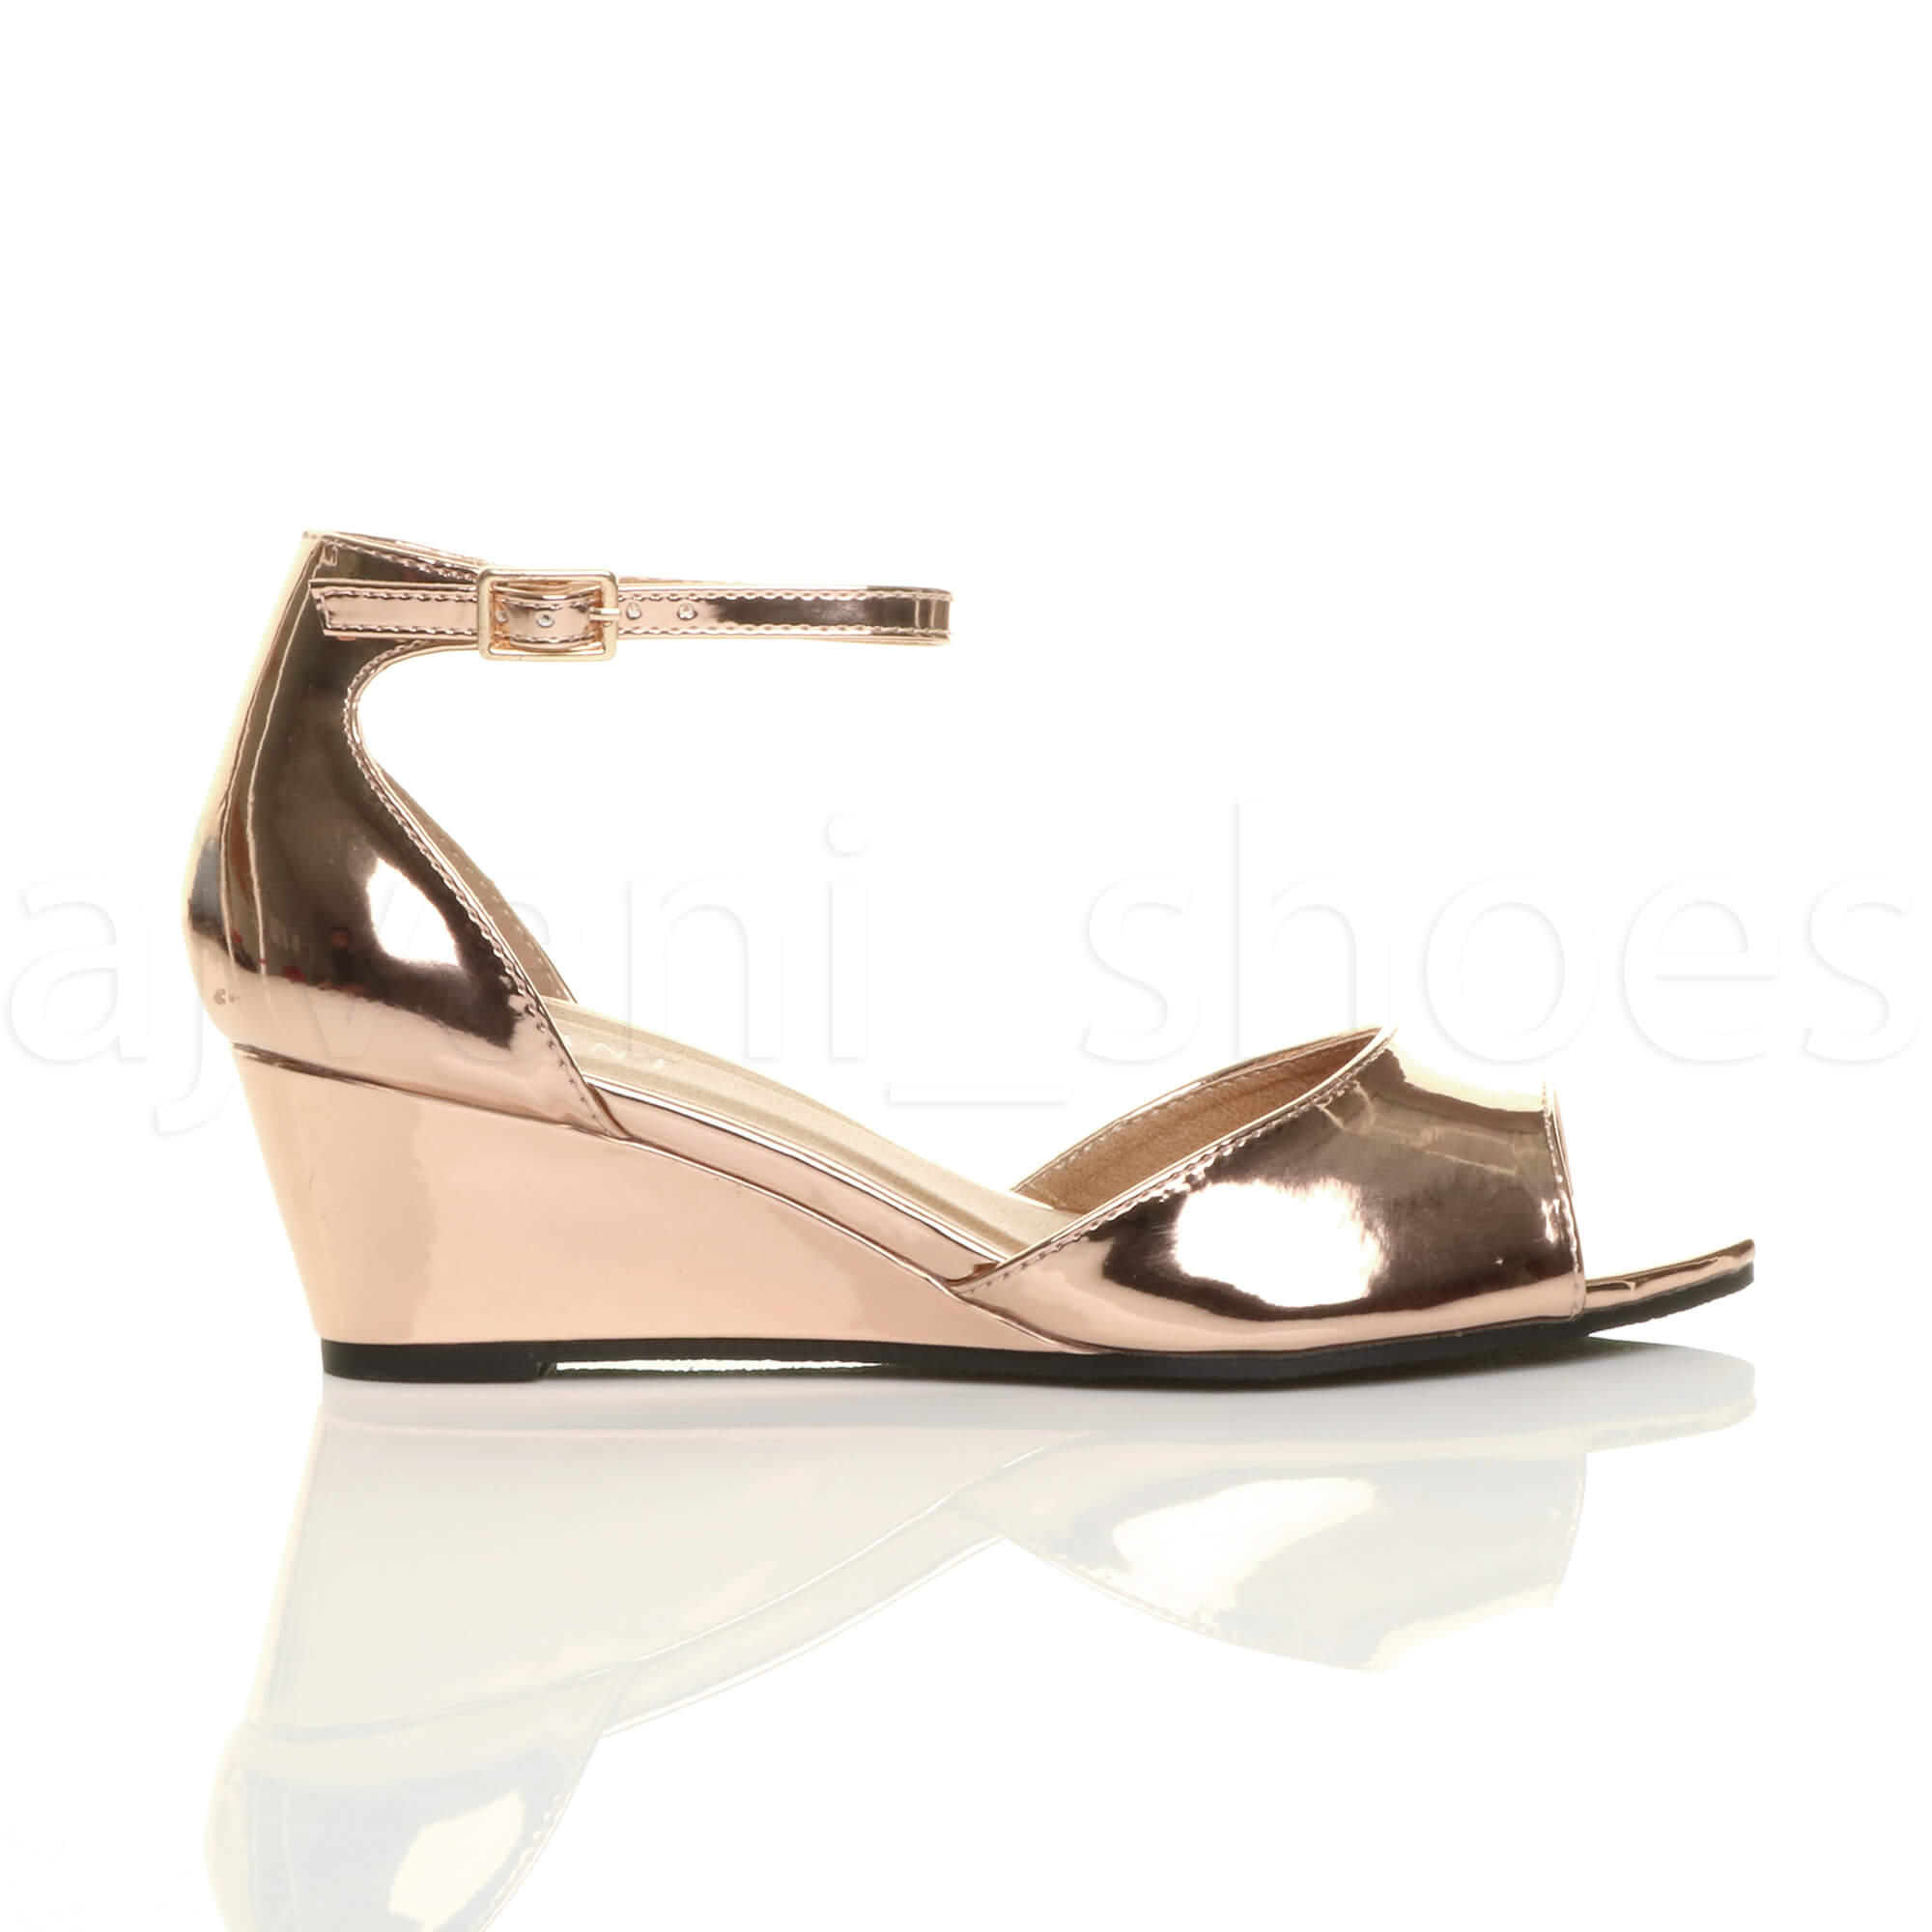 WOMENS-LADIES-LOW-MID-WEDGE-HEEL-ANKLE-STRAP-SMART-CASUAL-EVENING-SANDALS-SIZE thumbnail 131